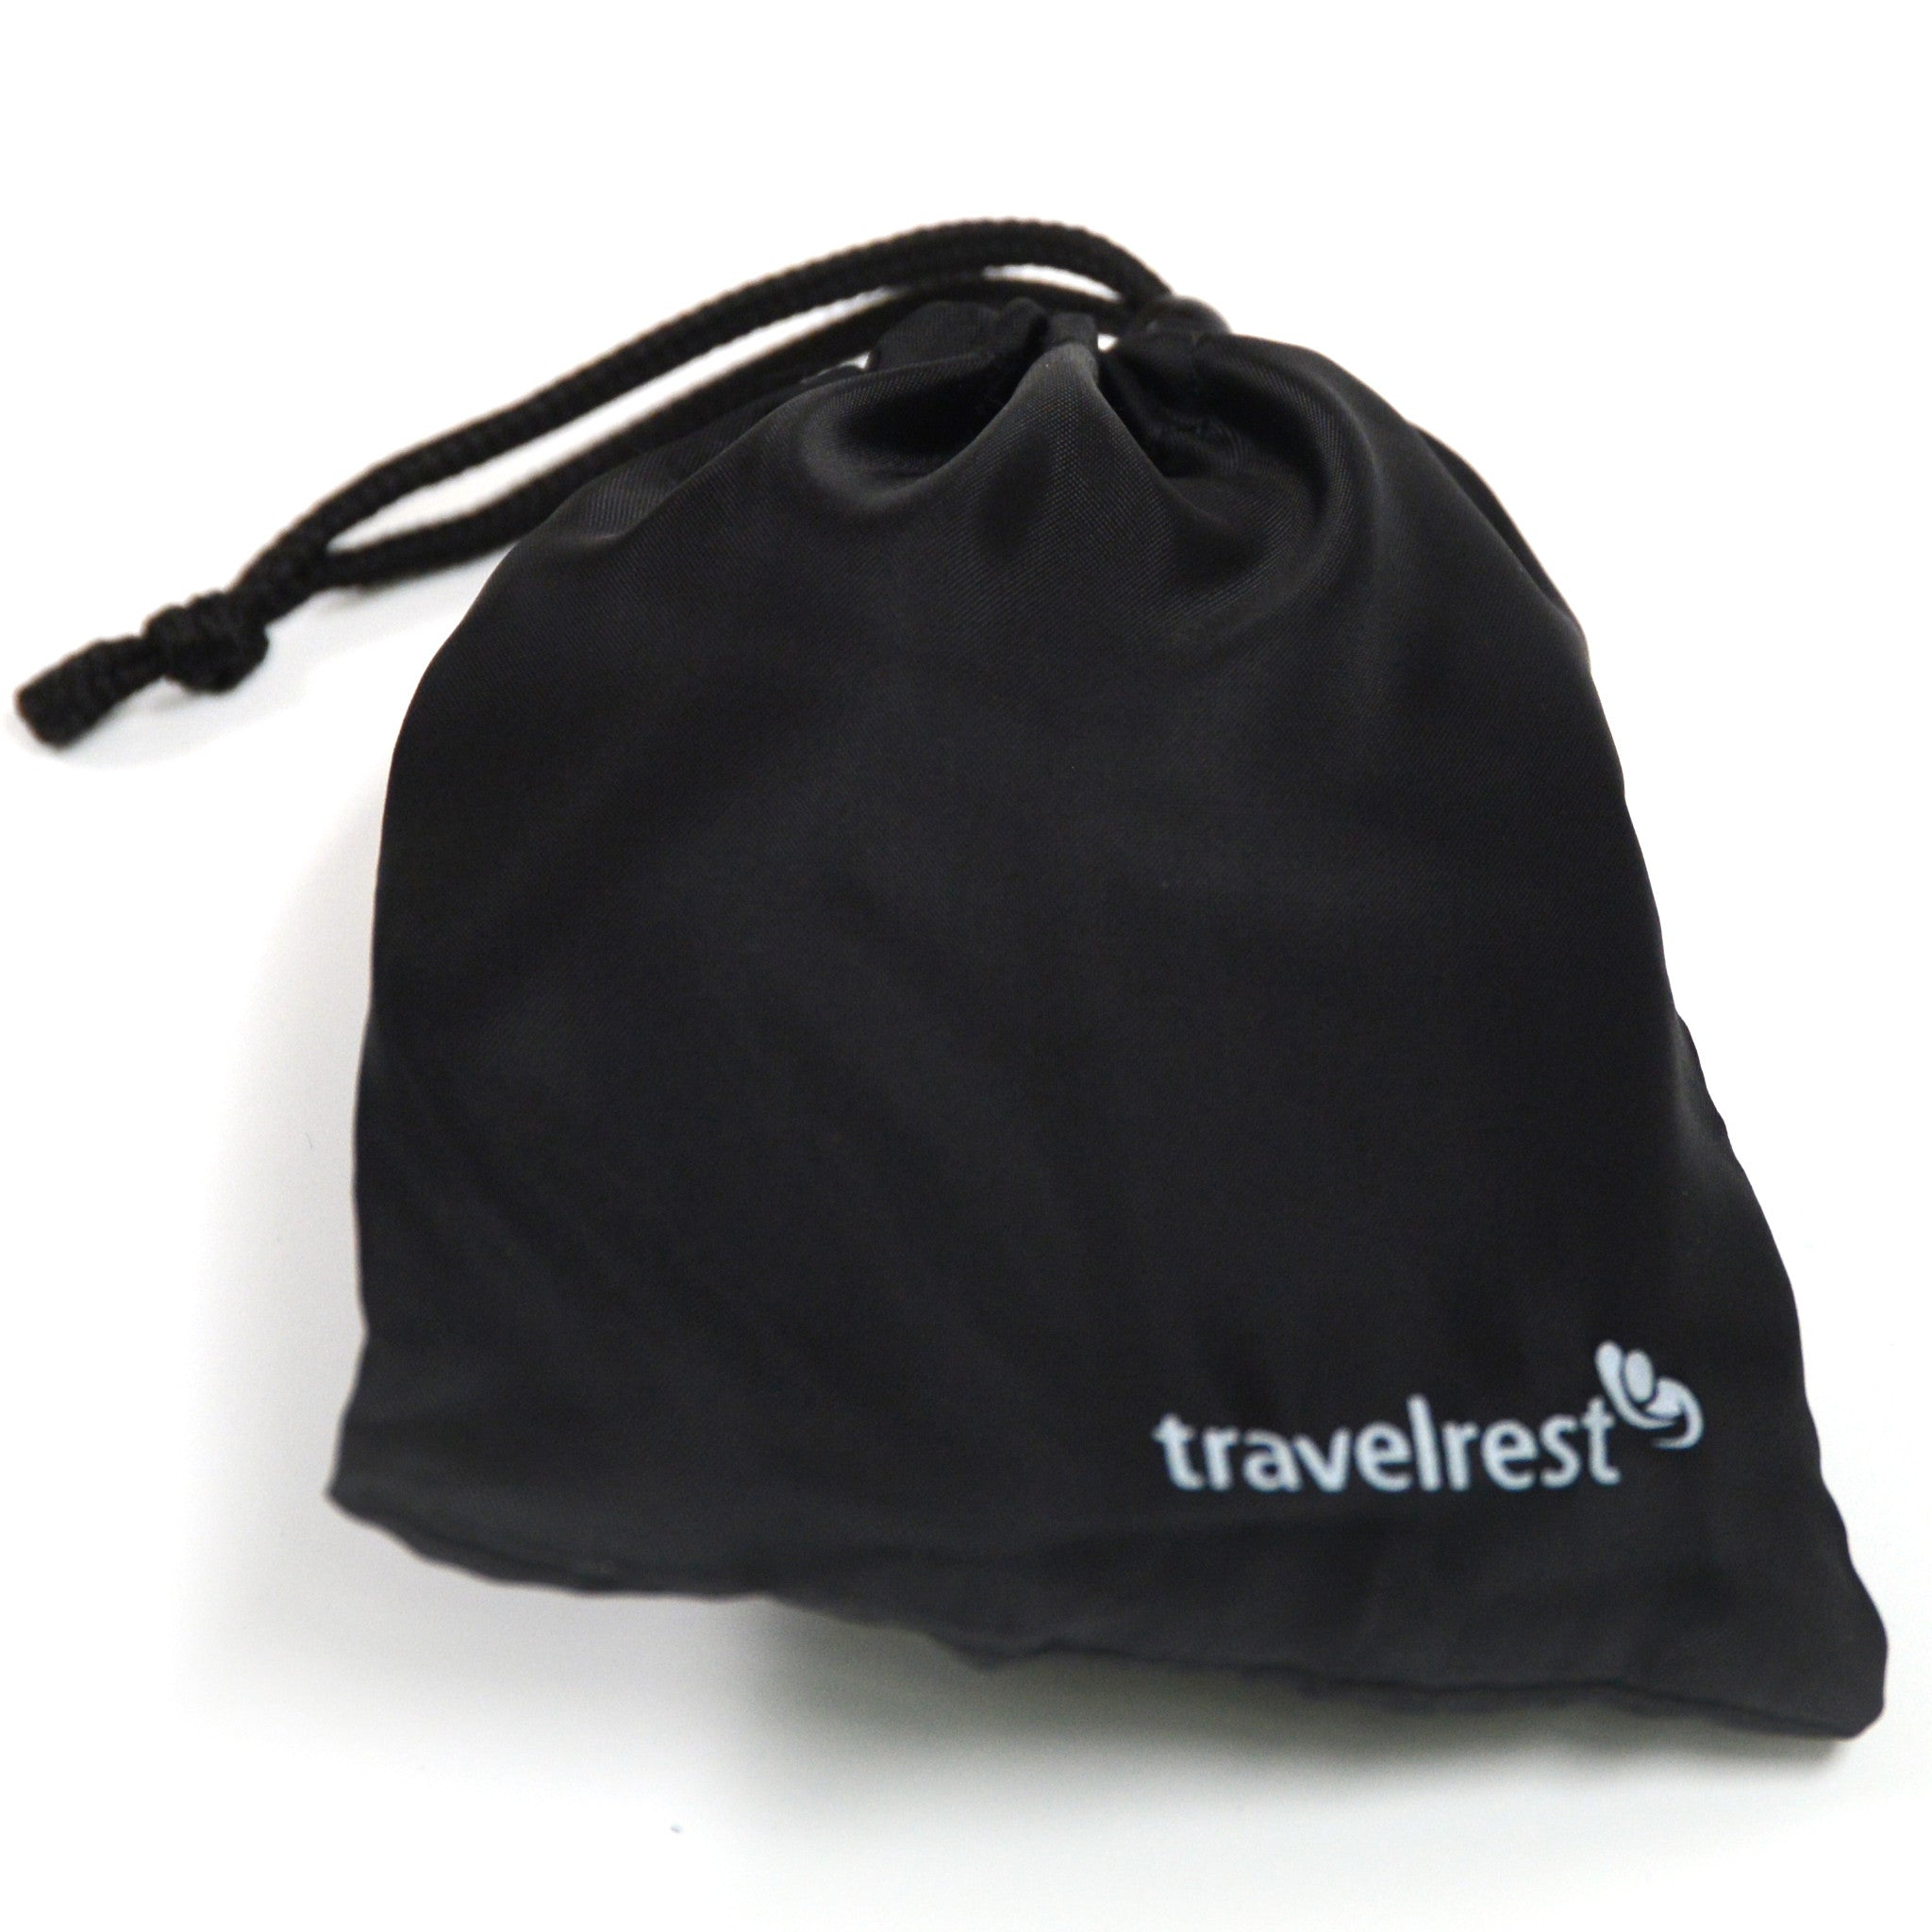 Eclipse Tranquility Sleep Mask Kit Travelrest